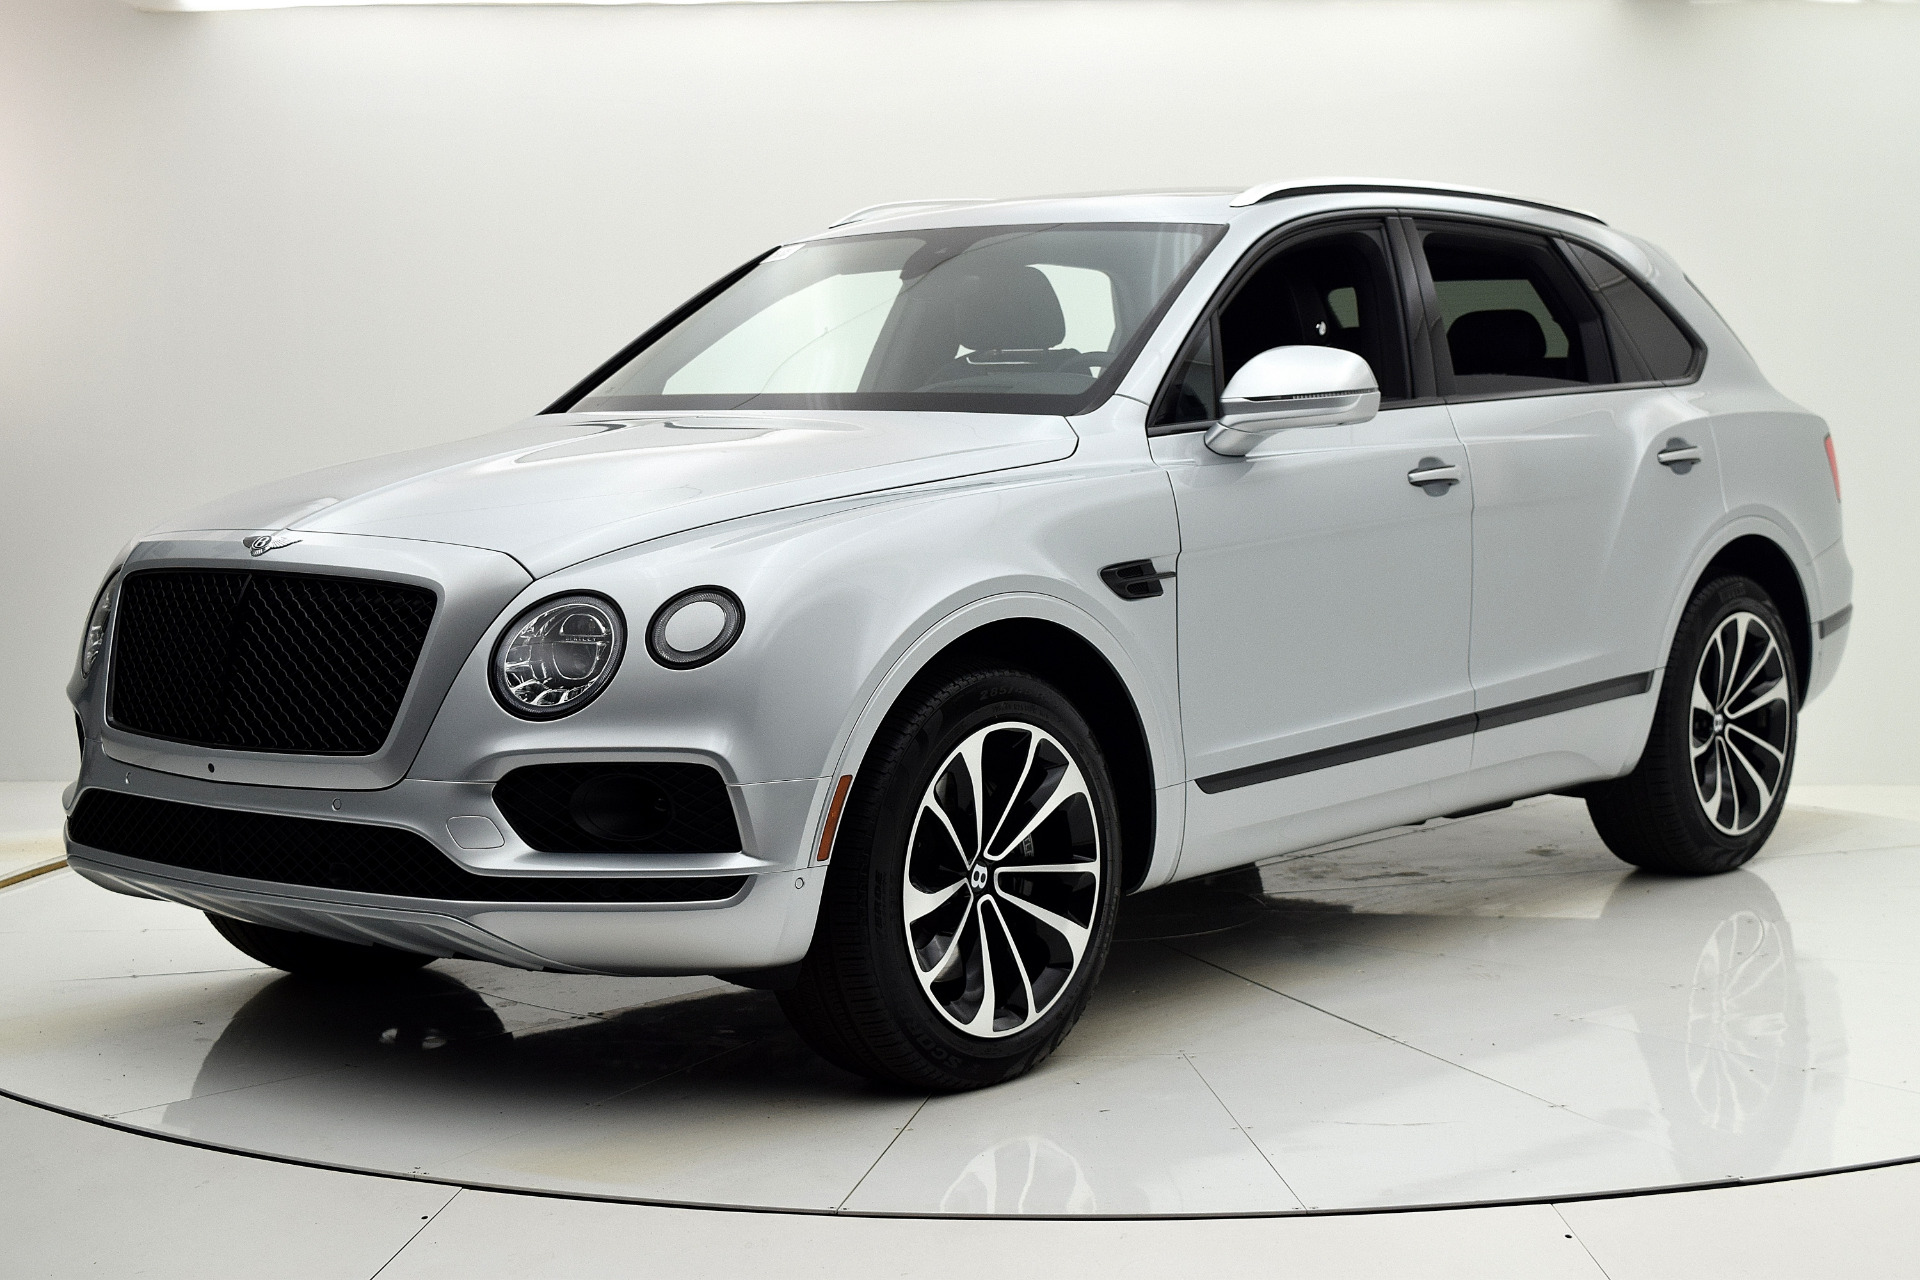 Used 2018 Bentley Bentayga Onyx Edition Blackline Spec for sale Sold at F.C. Kerbeck Aston Martin in Palmyra NJ 08065 2